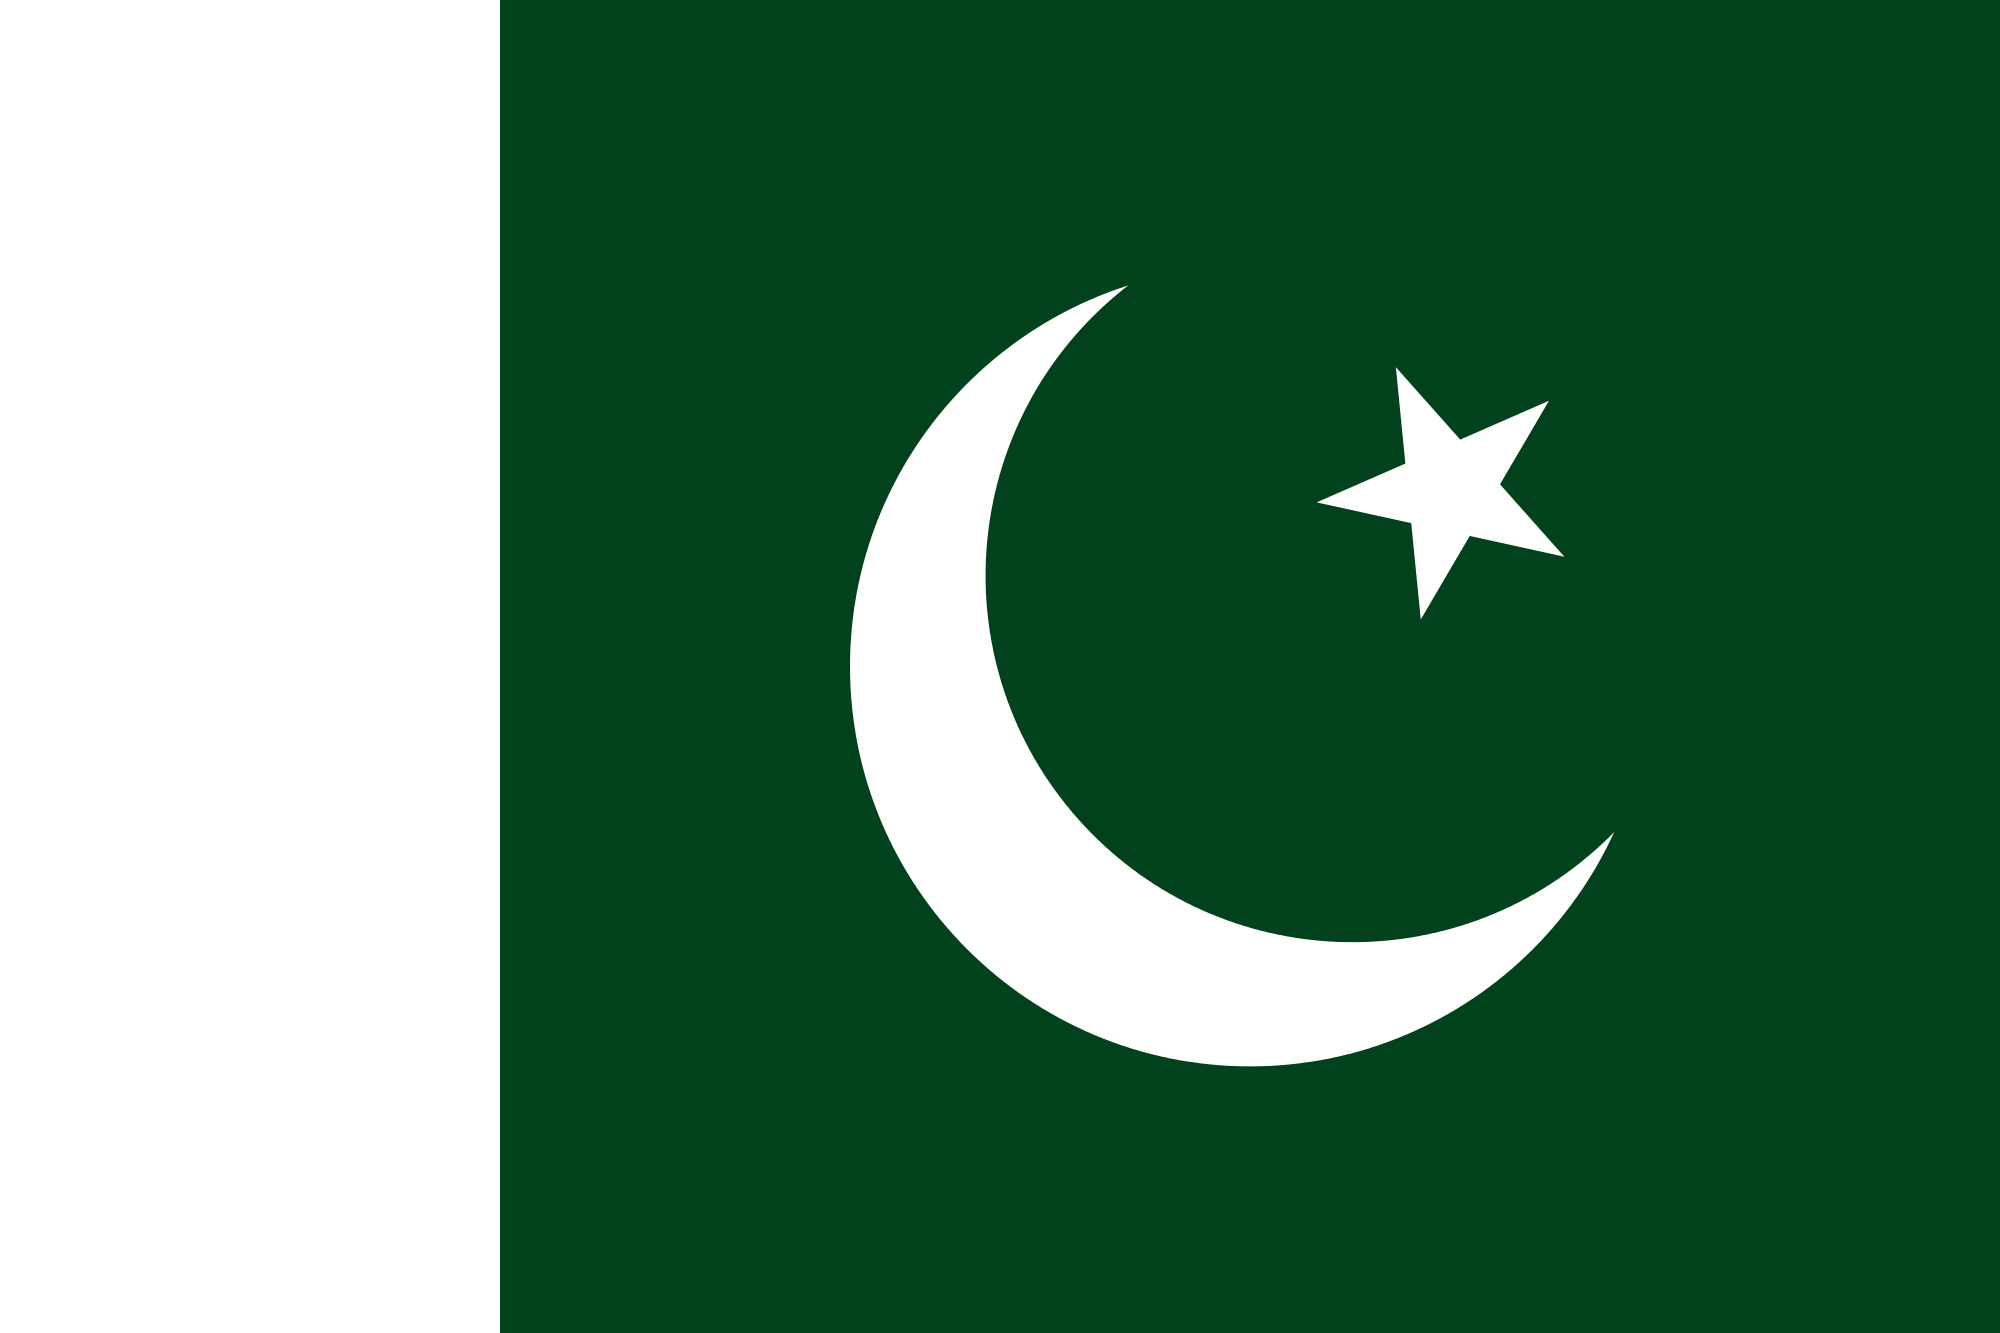 Muslim crescent archives fun flag facts crescent moon star and green in islamic flags biocorpaavc